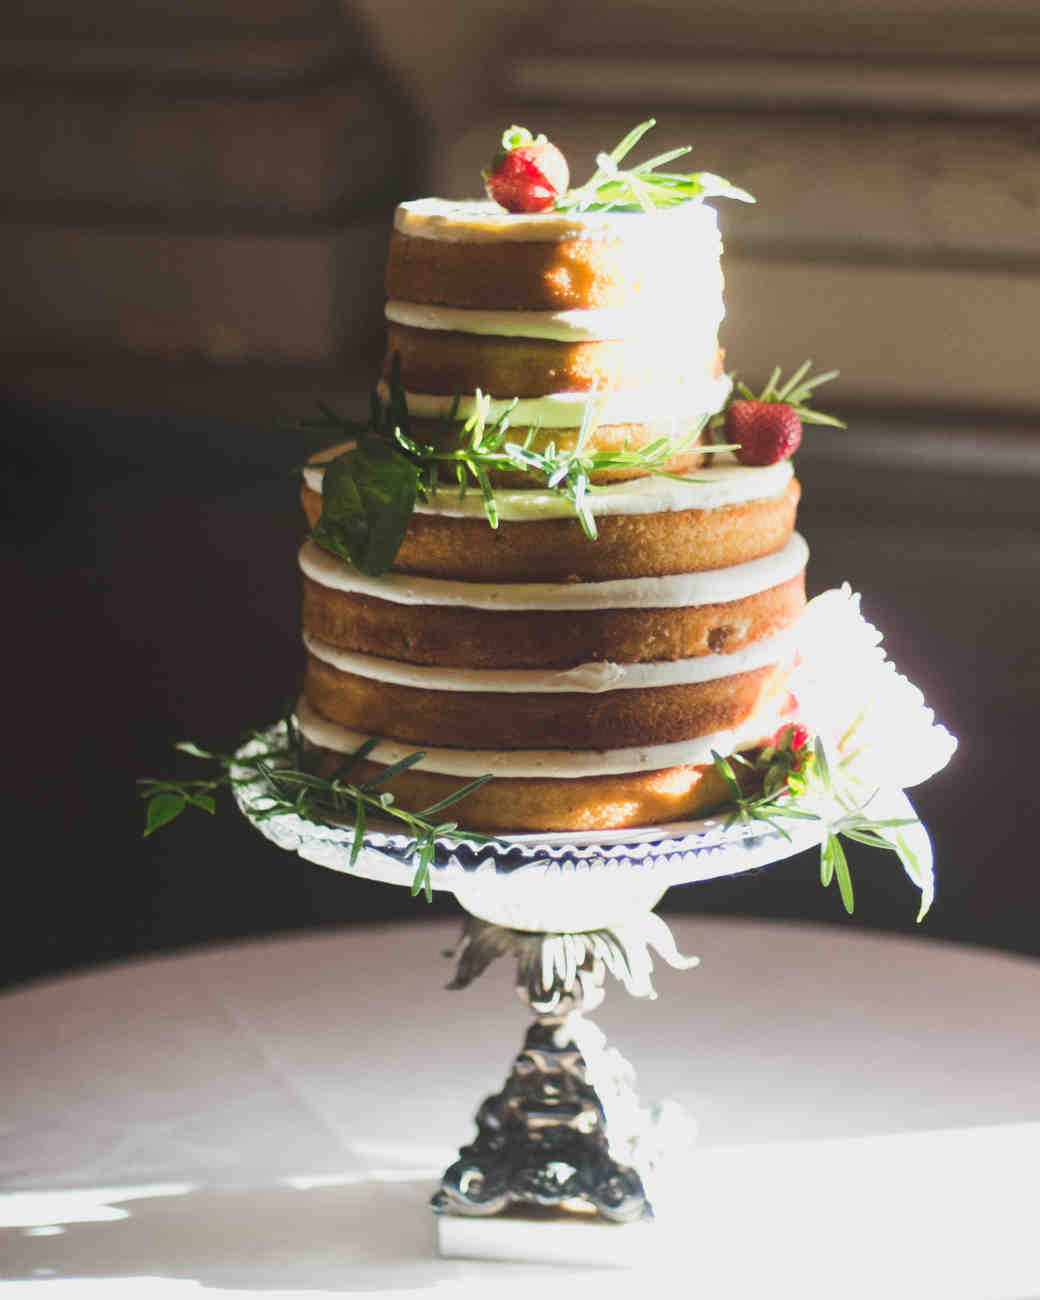 8 Wedding Cake Flavors You Haven t Tried Yet   Martha Stewart Weddings Lemon Basil Naked Cake with Strawberry Compote and Cream Cheese Frosting